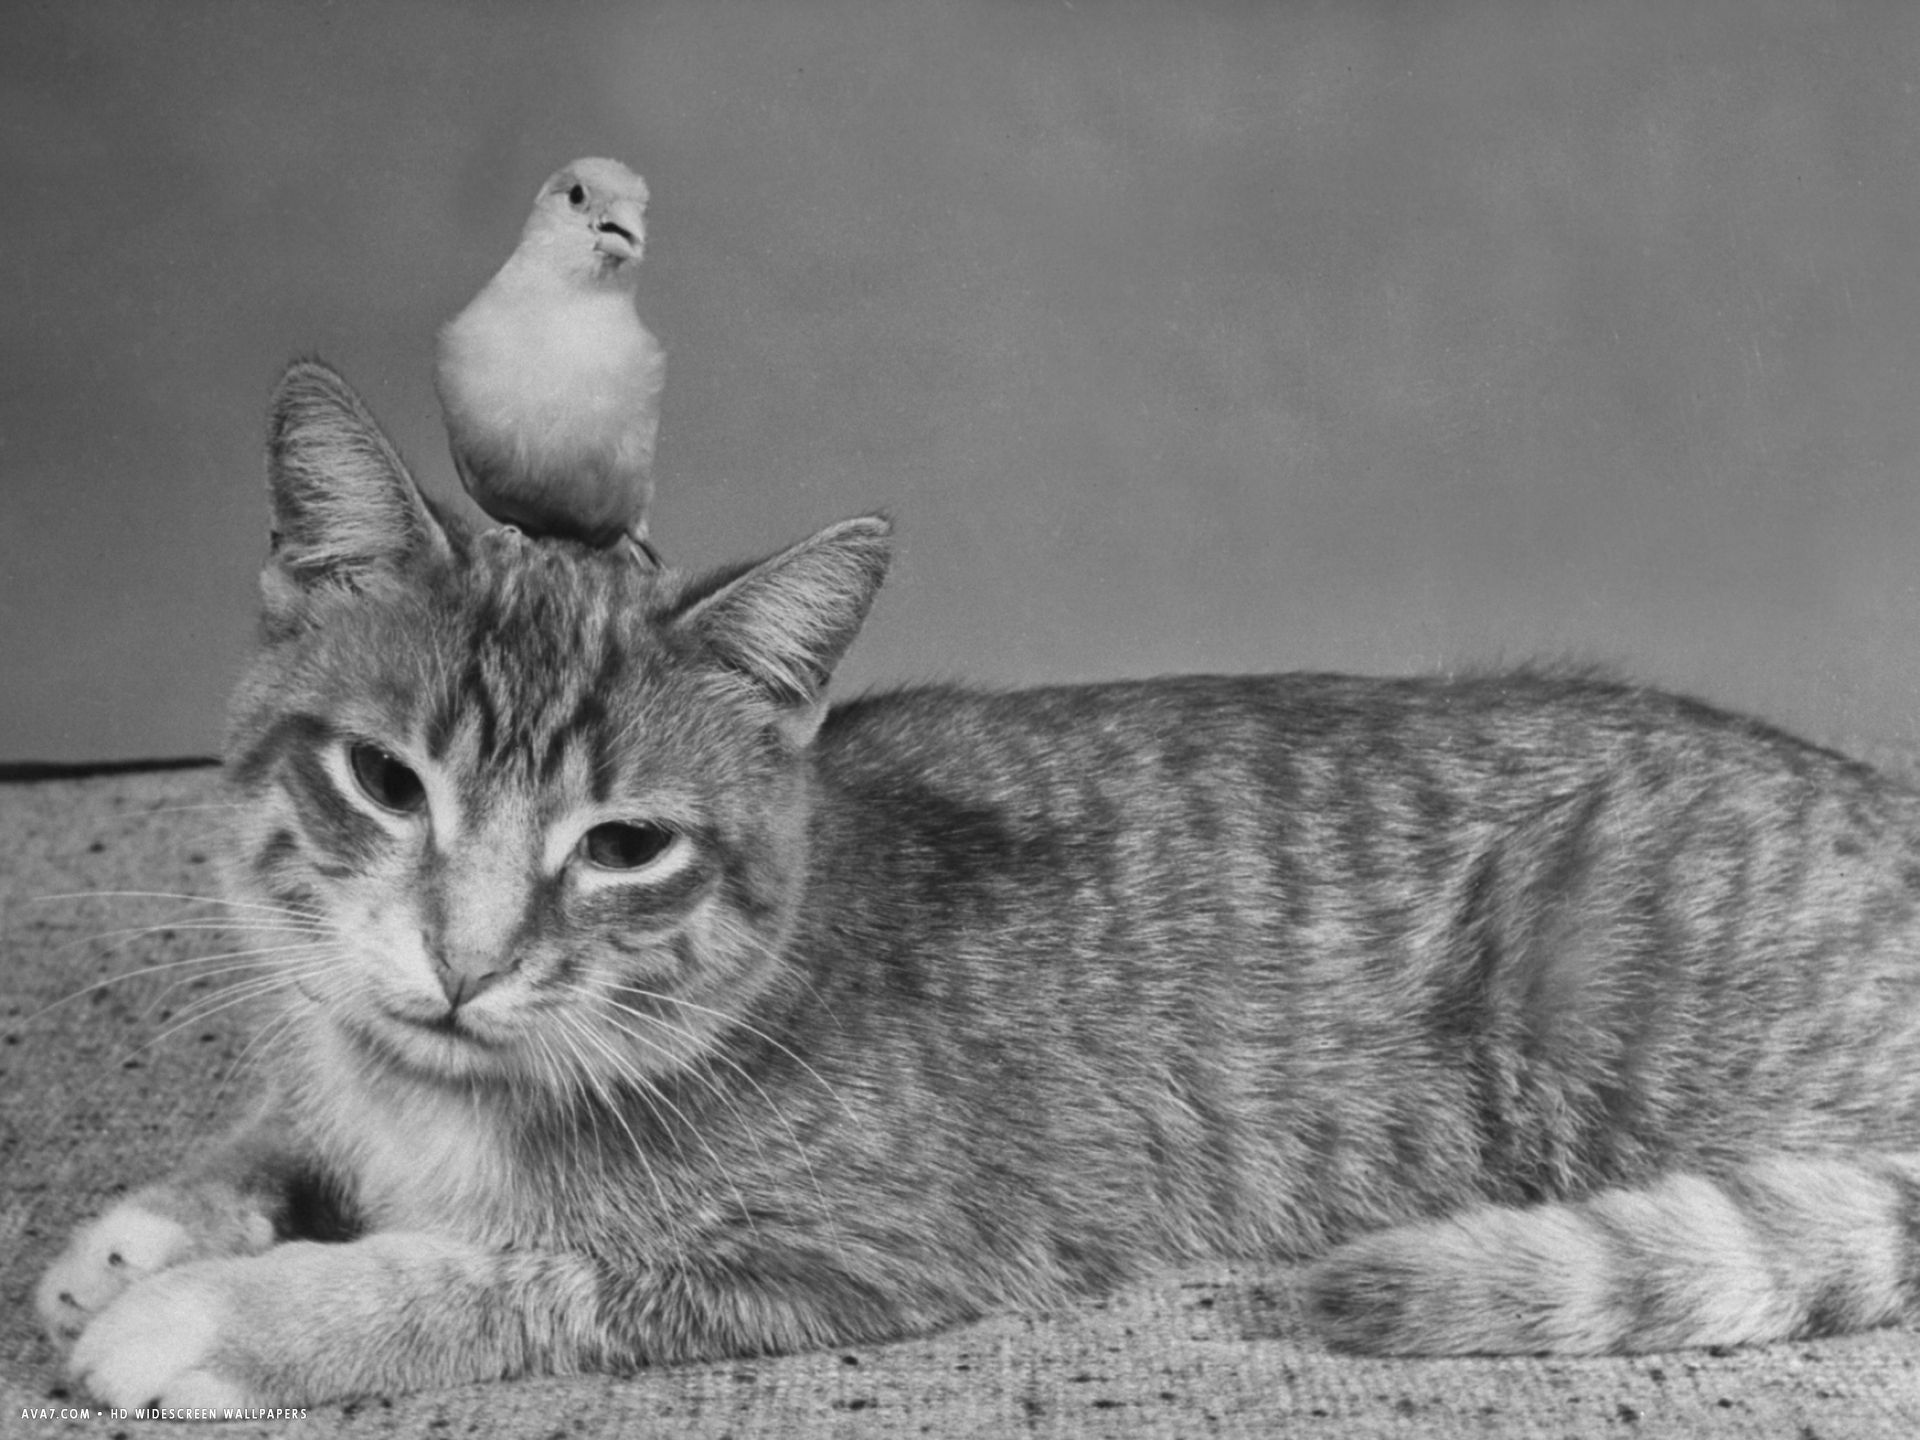 pet canary perched on the head of a household cat